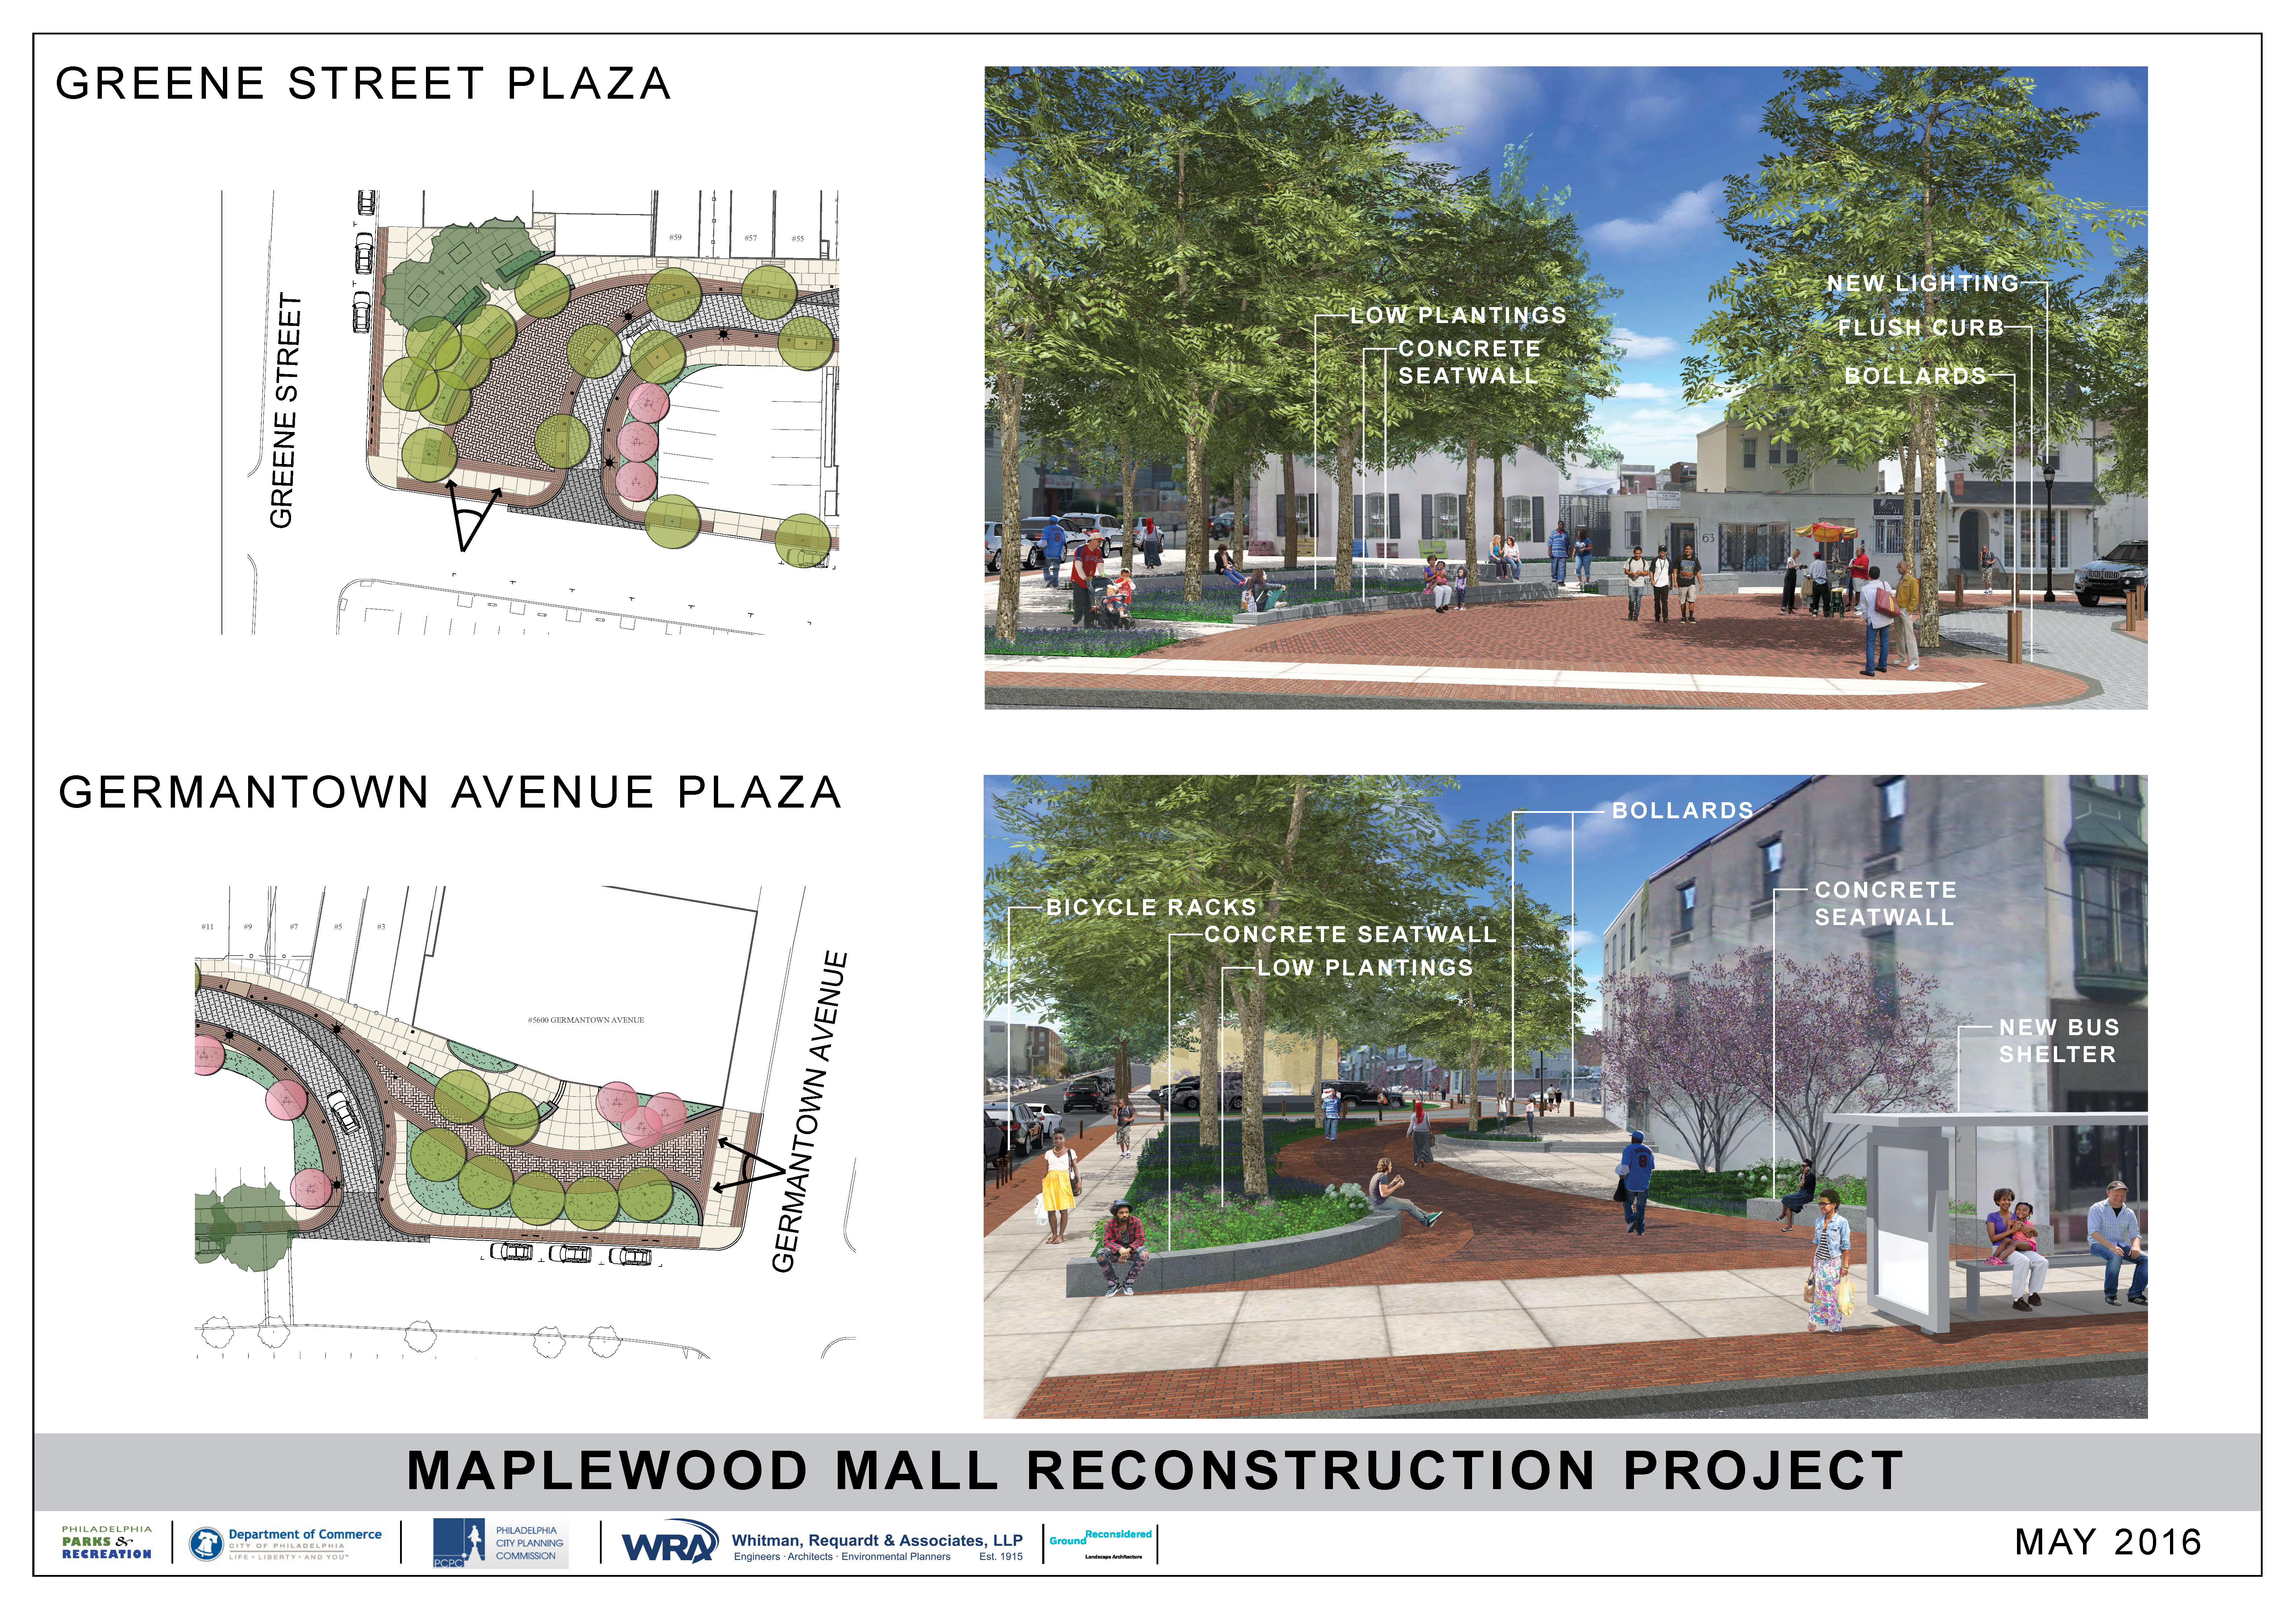 Maplewood Mall proposed reconstruction plan | WRA and Ground Reconsidered